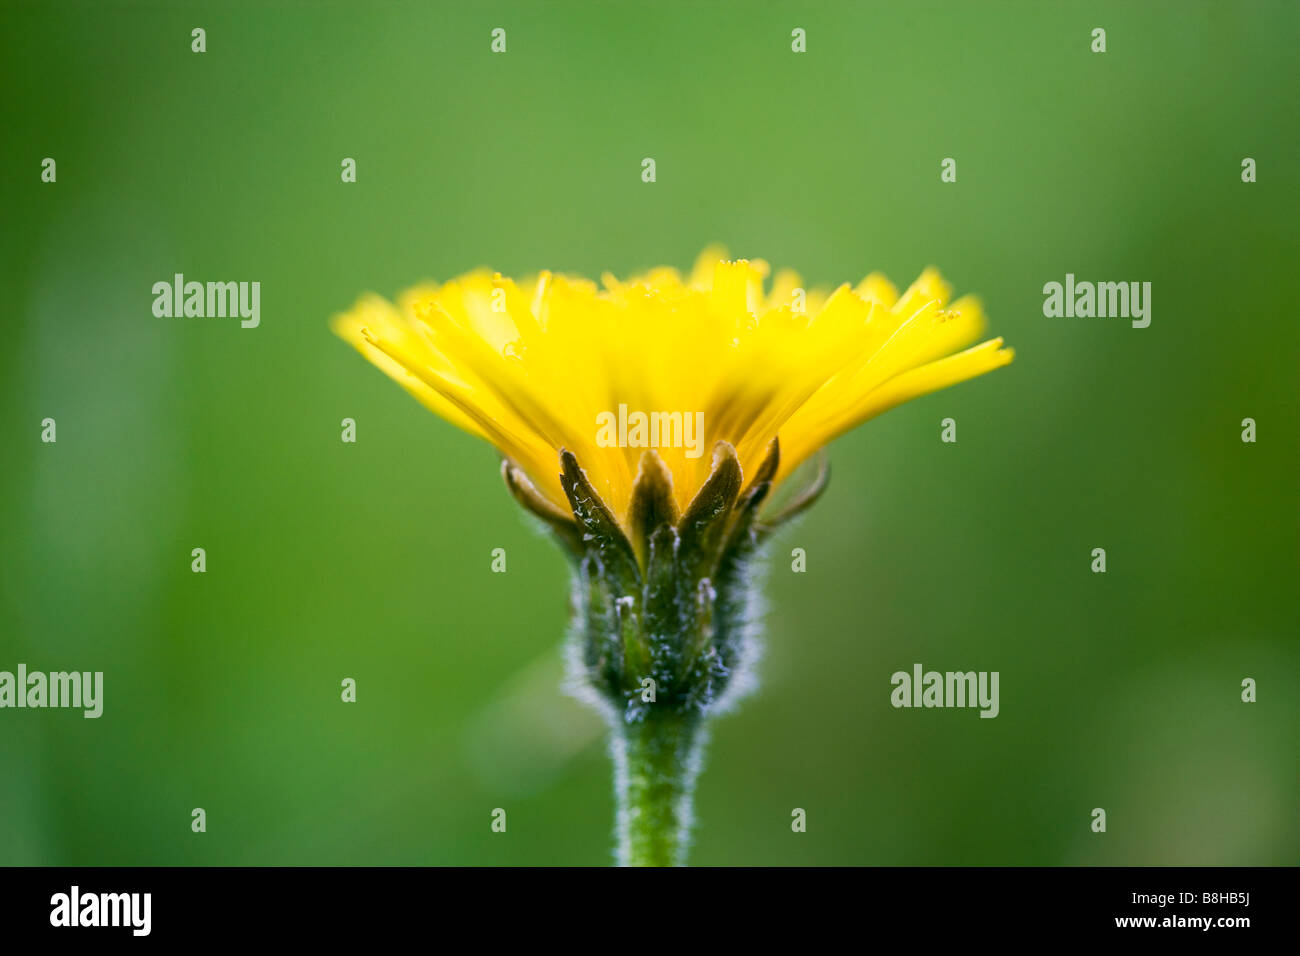 Dandelion flower close up.  Latin name:Taraxacum Officinale - Stock Image